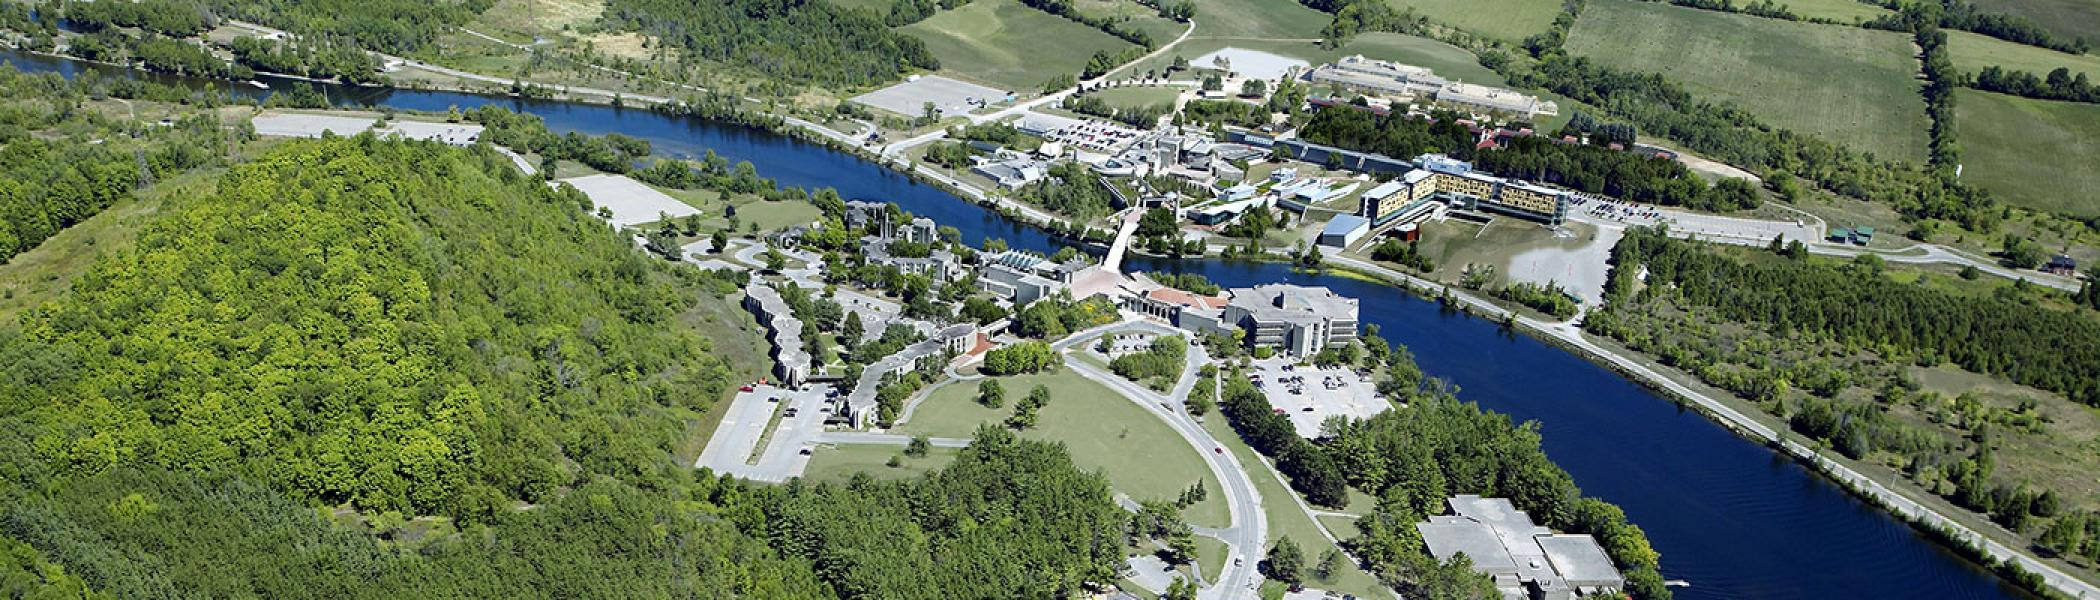 Aerial photo of Trent's Symons Campus and the surrounding land.